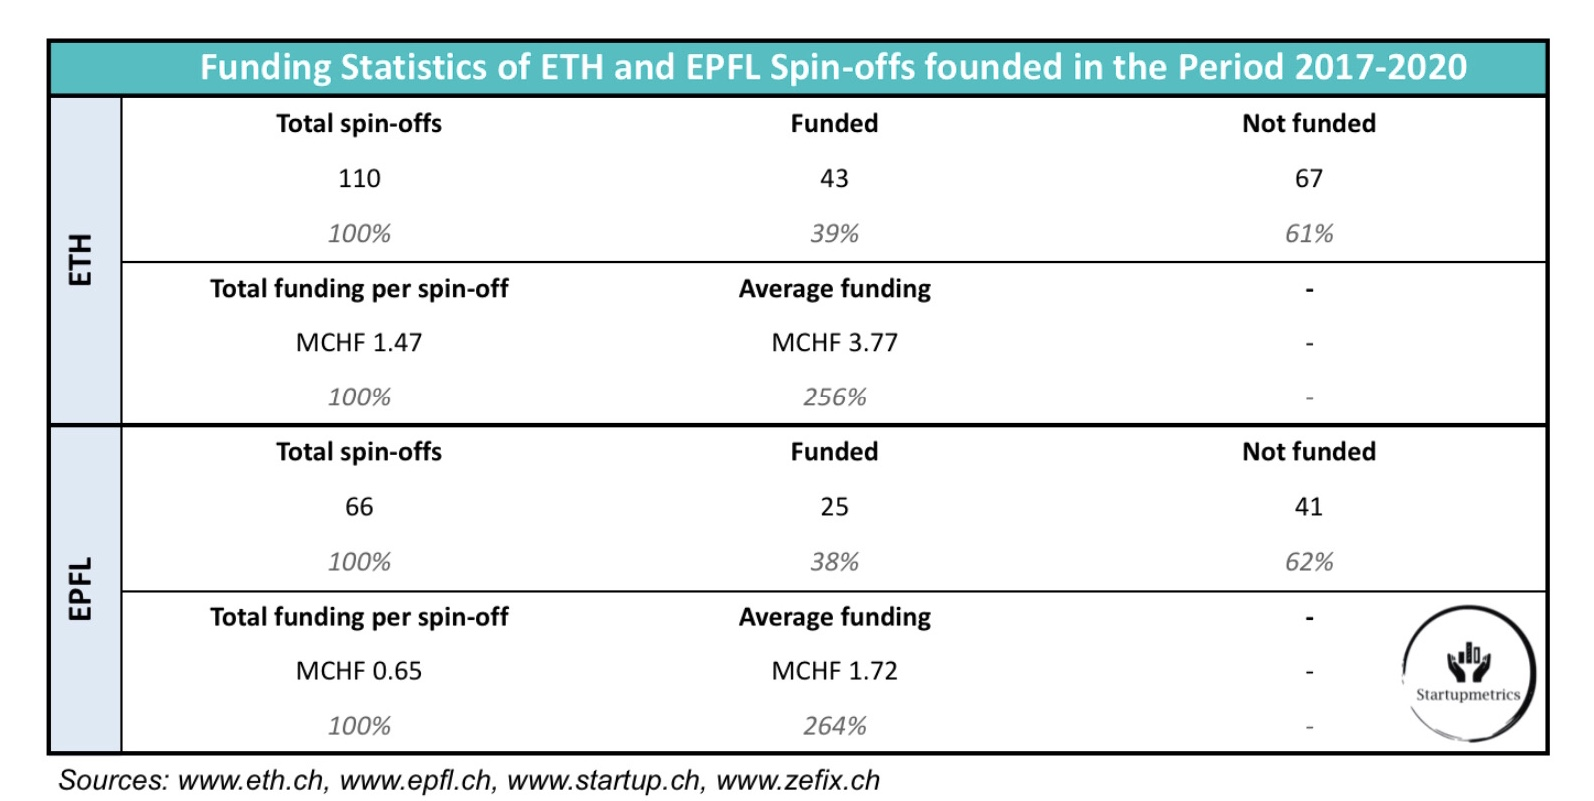 ETH Spin-offs receive on Average more than twice as much Funding as EPFL spin-offs